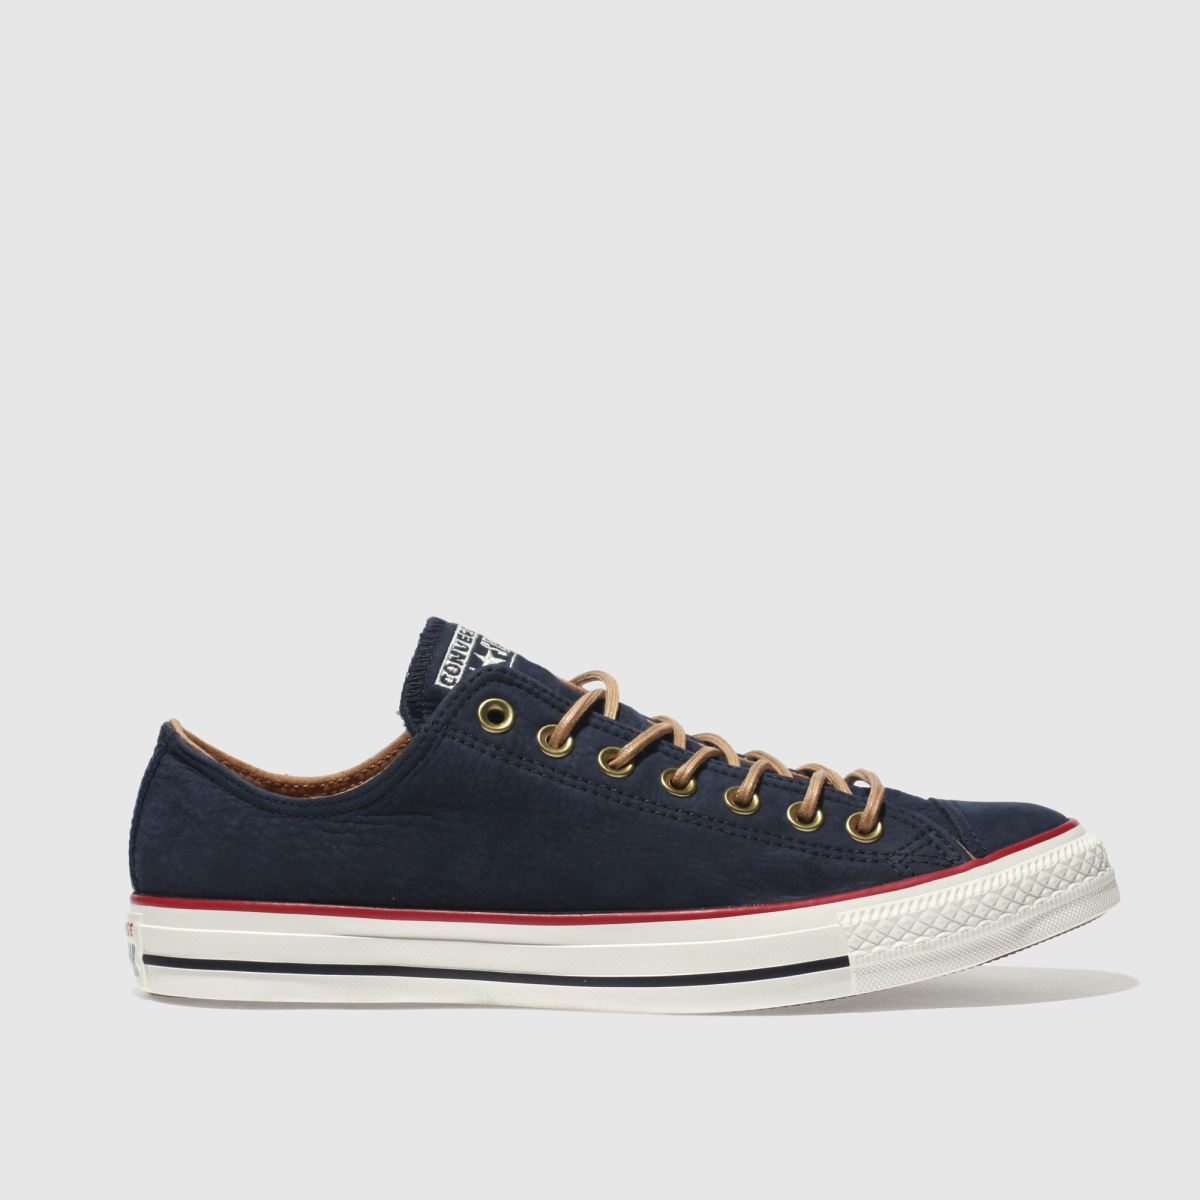 Converse Navy All Star Earthy Buck Ox Trainers